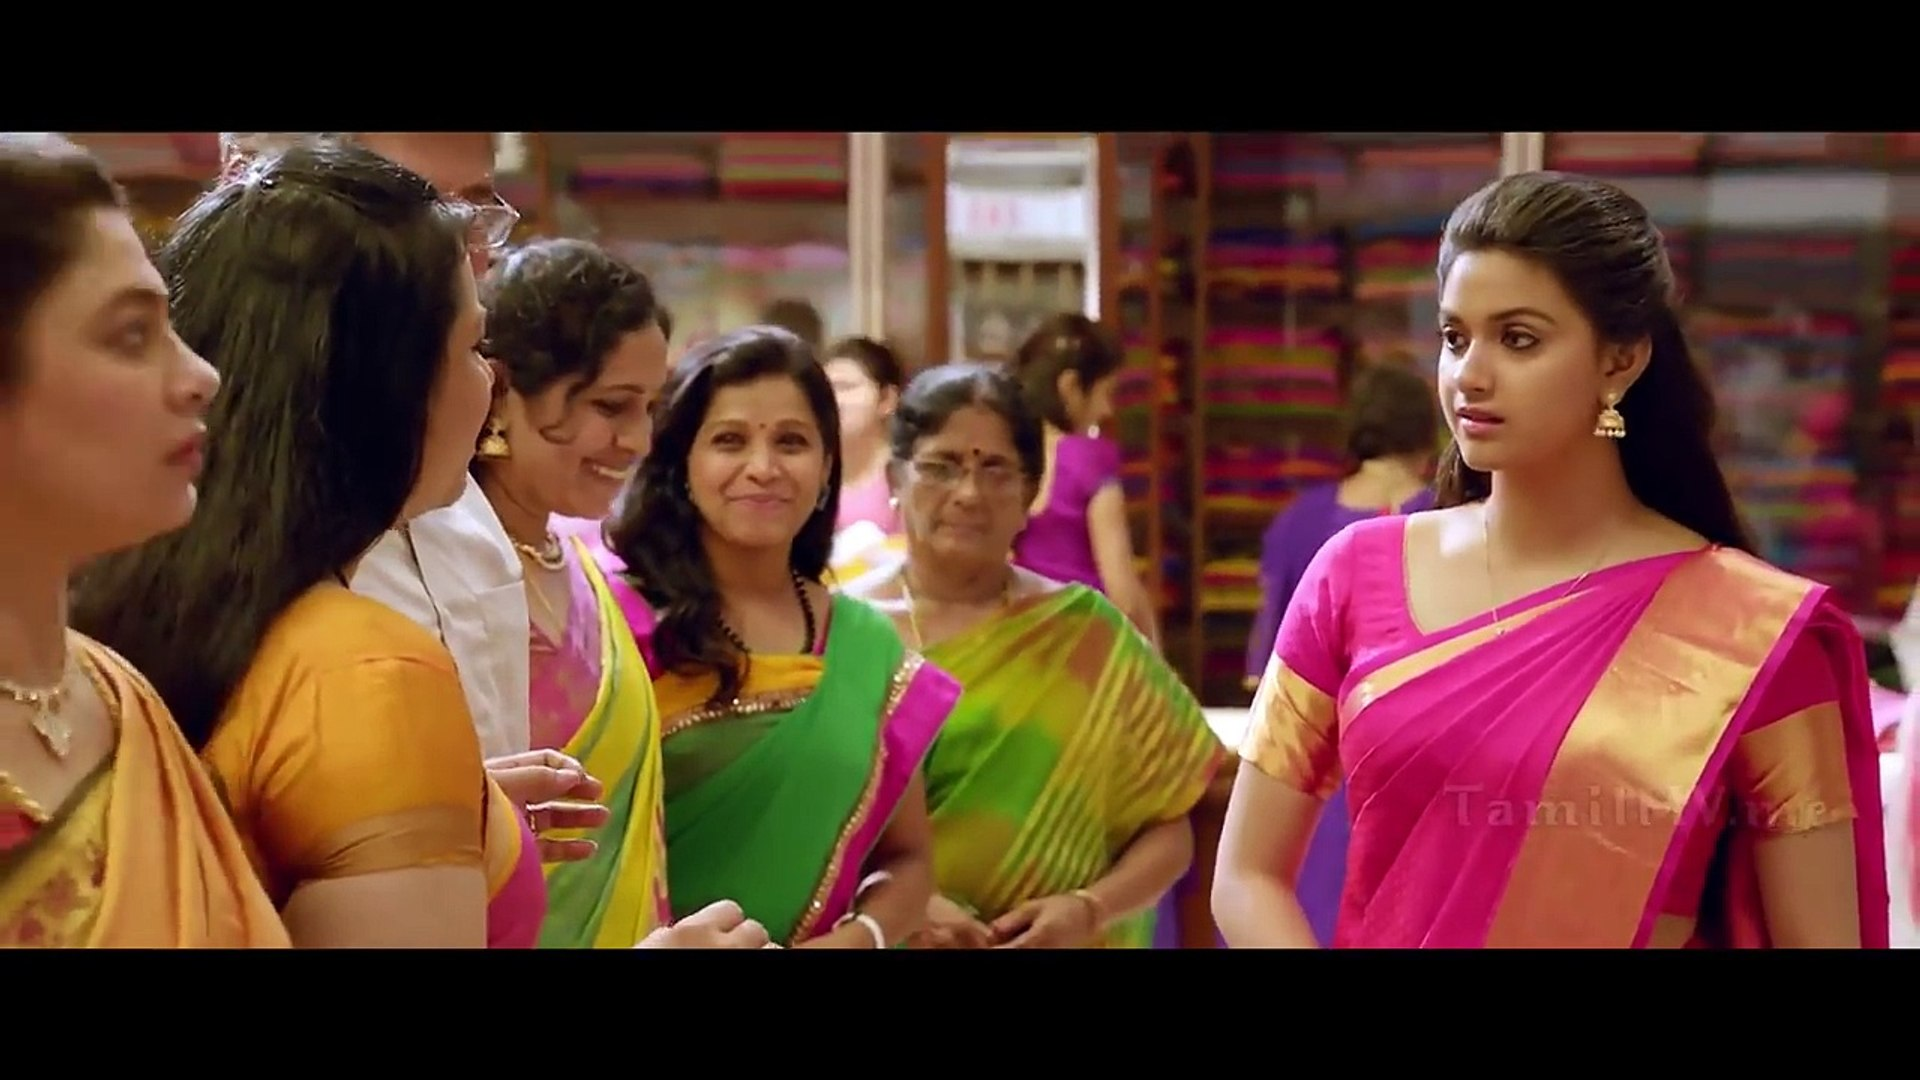 charming keerthy suresh in saree remo video dailymotion charming keerthy suresh in saree remo